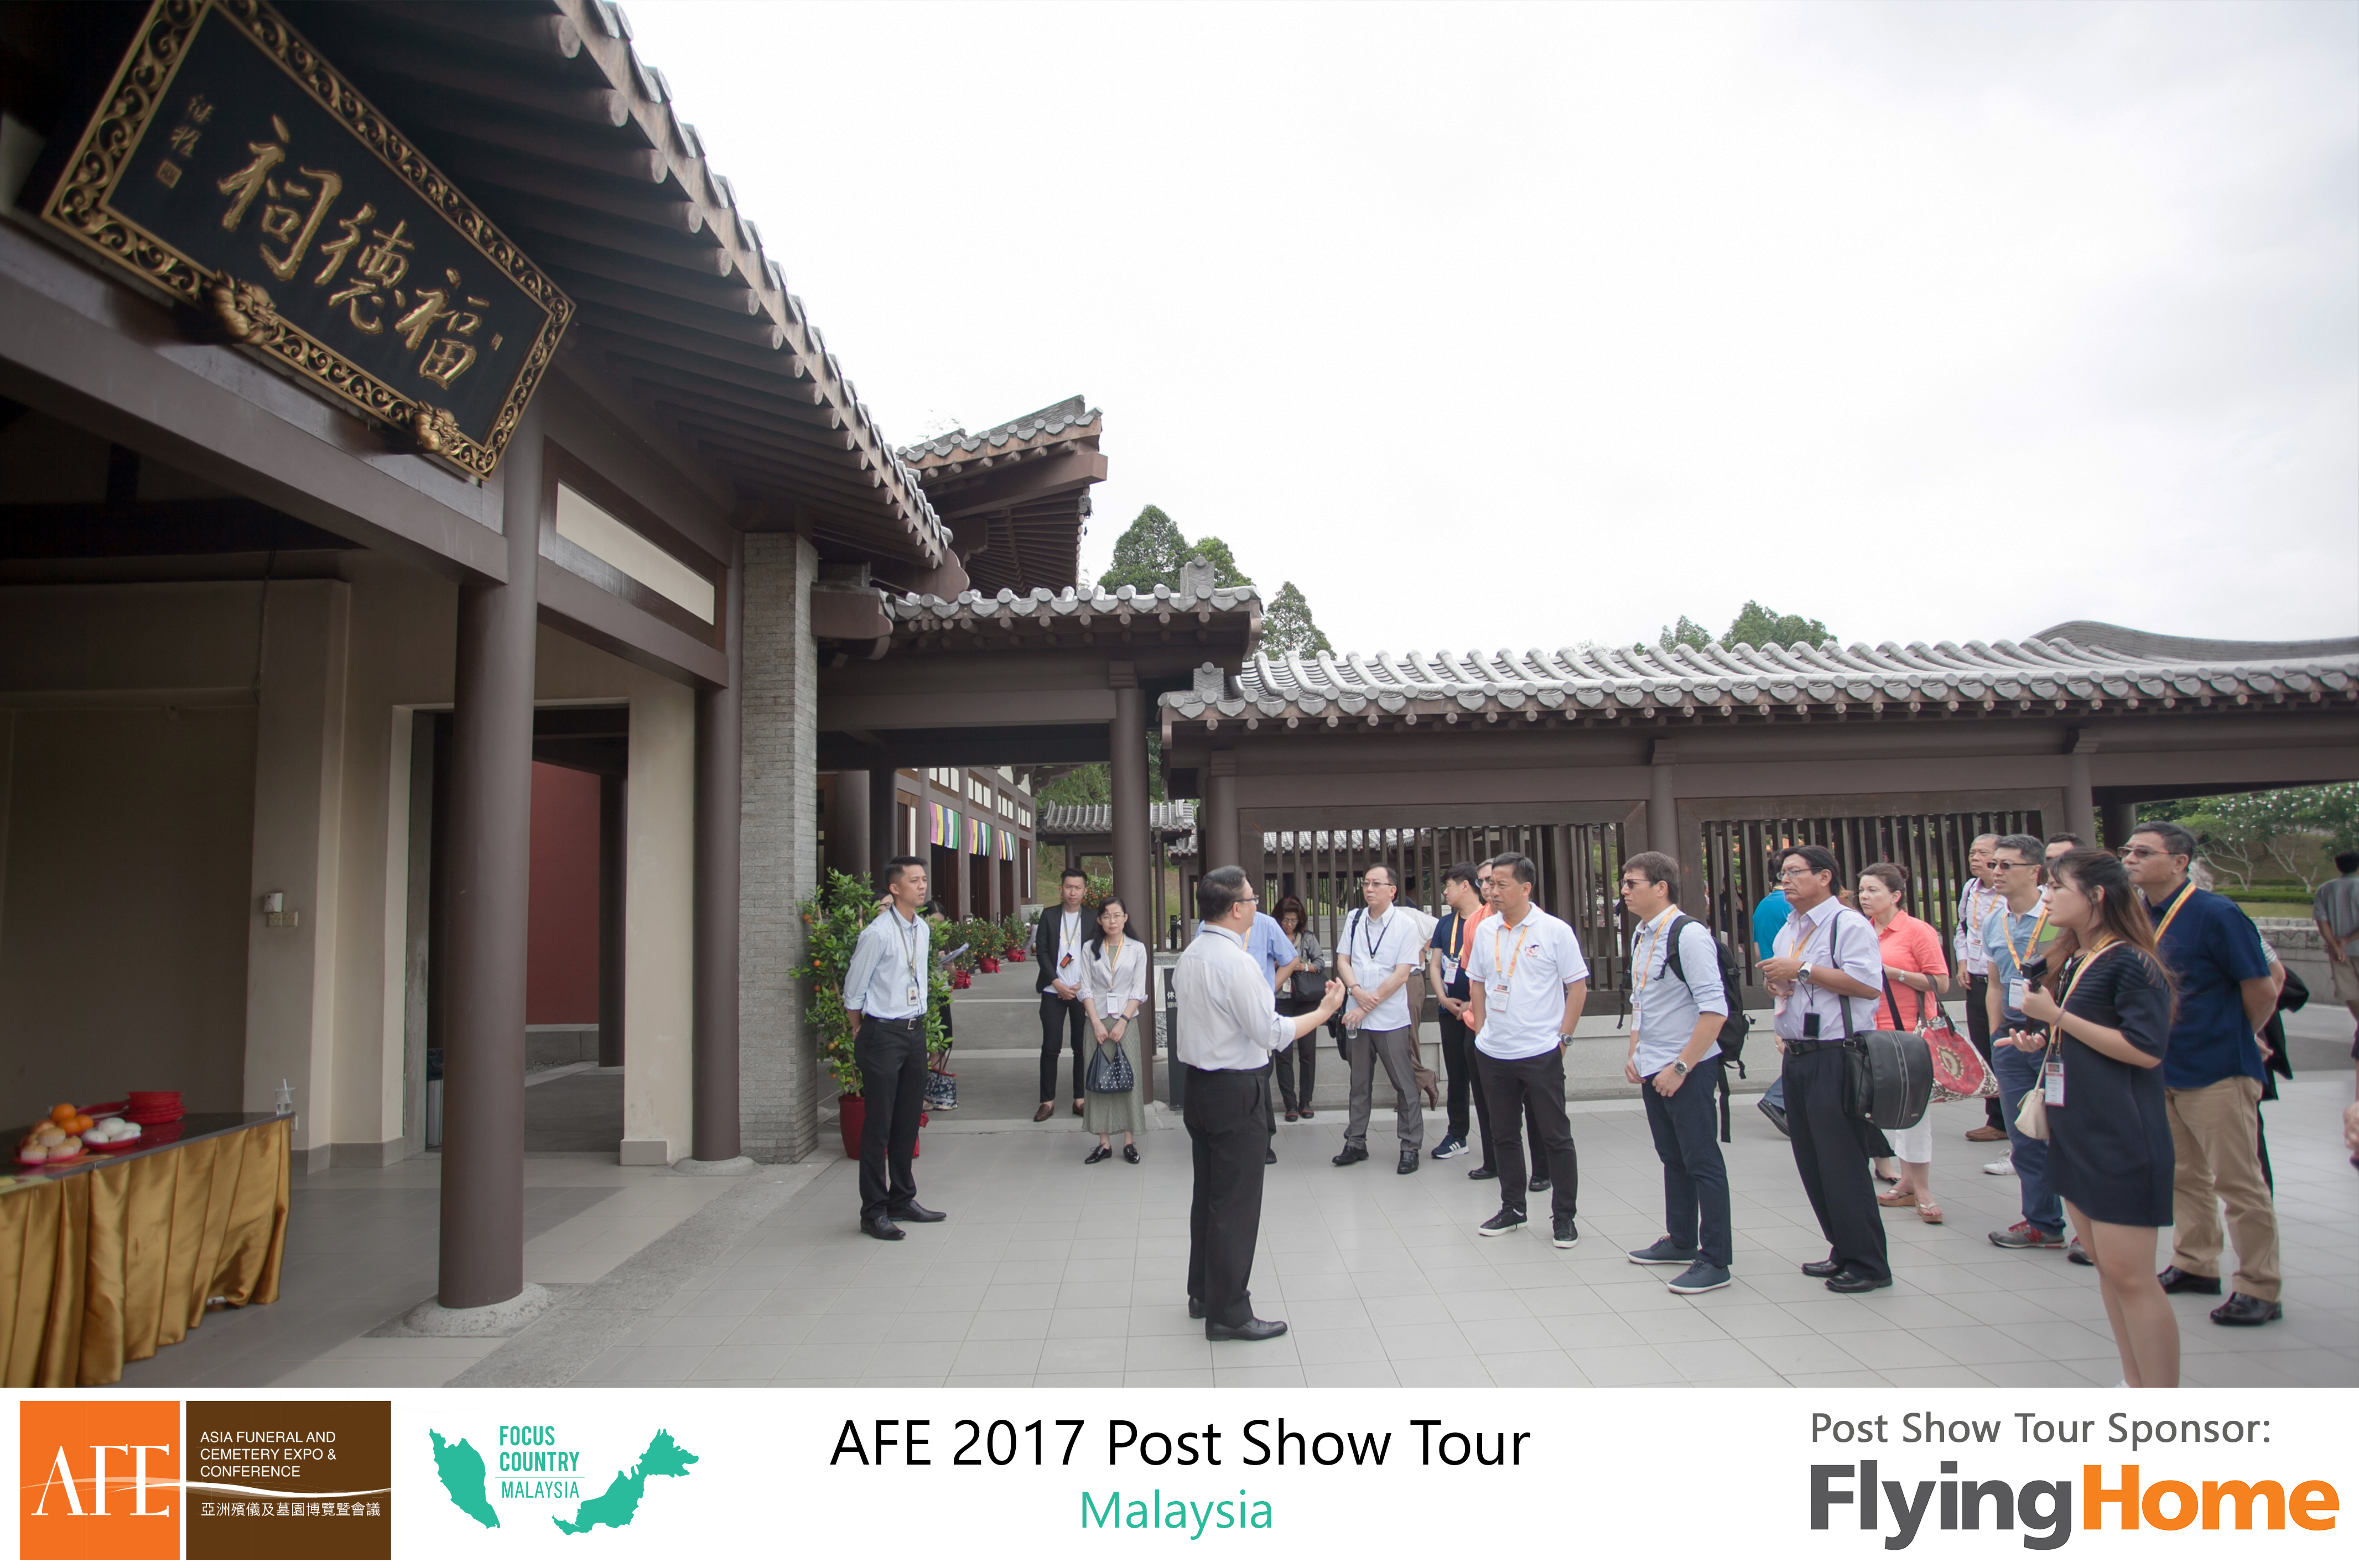 AFE Post Show Tour 2017 Day 3 -03